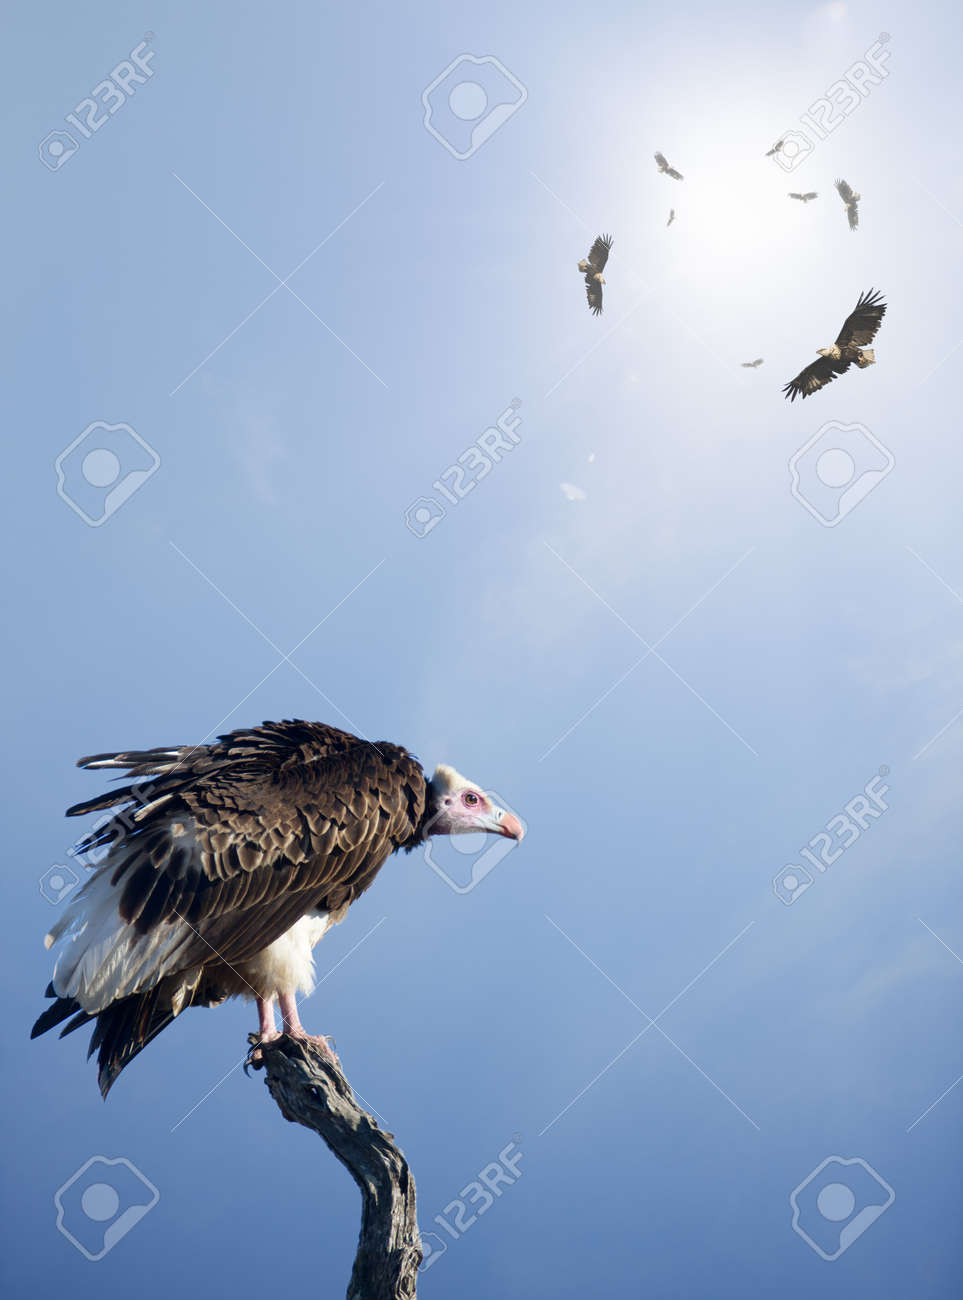 Conceptual - Vultures waiting to prey on innocent victims (digital composite) Stock Photo - 10223673